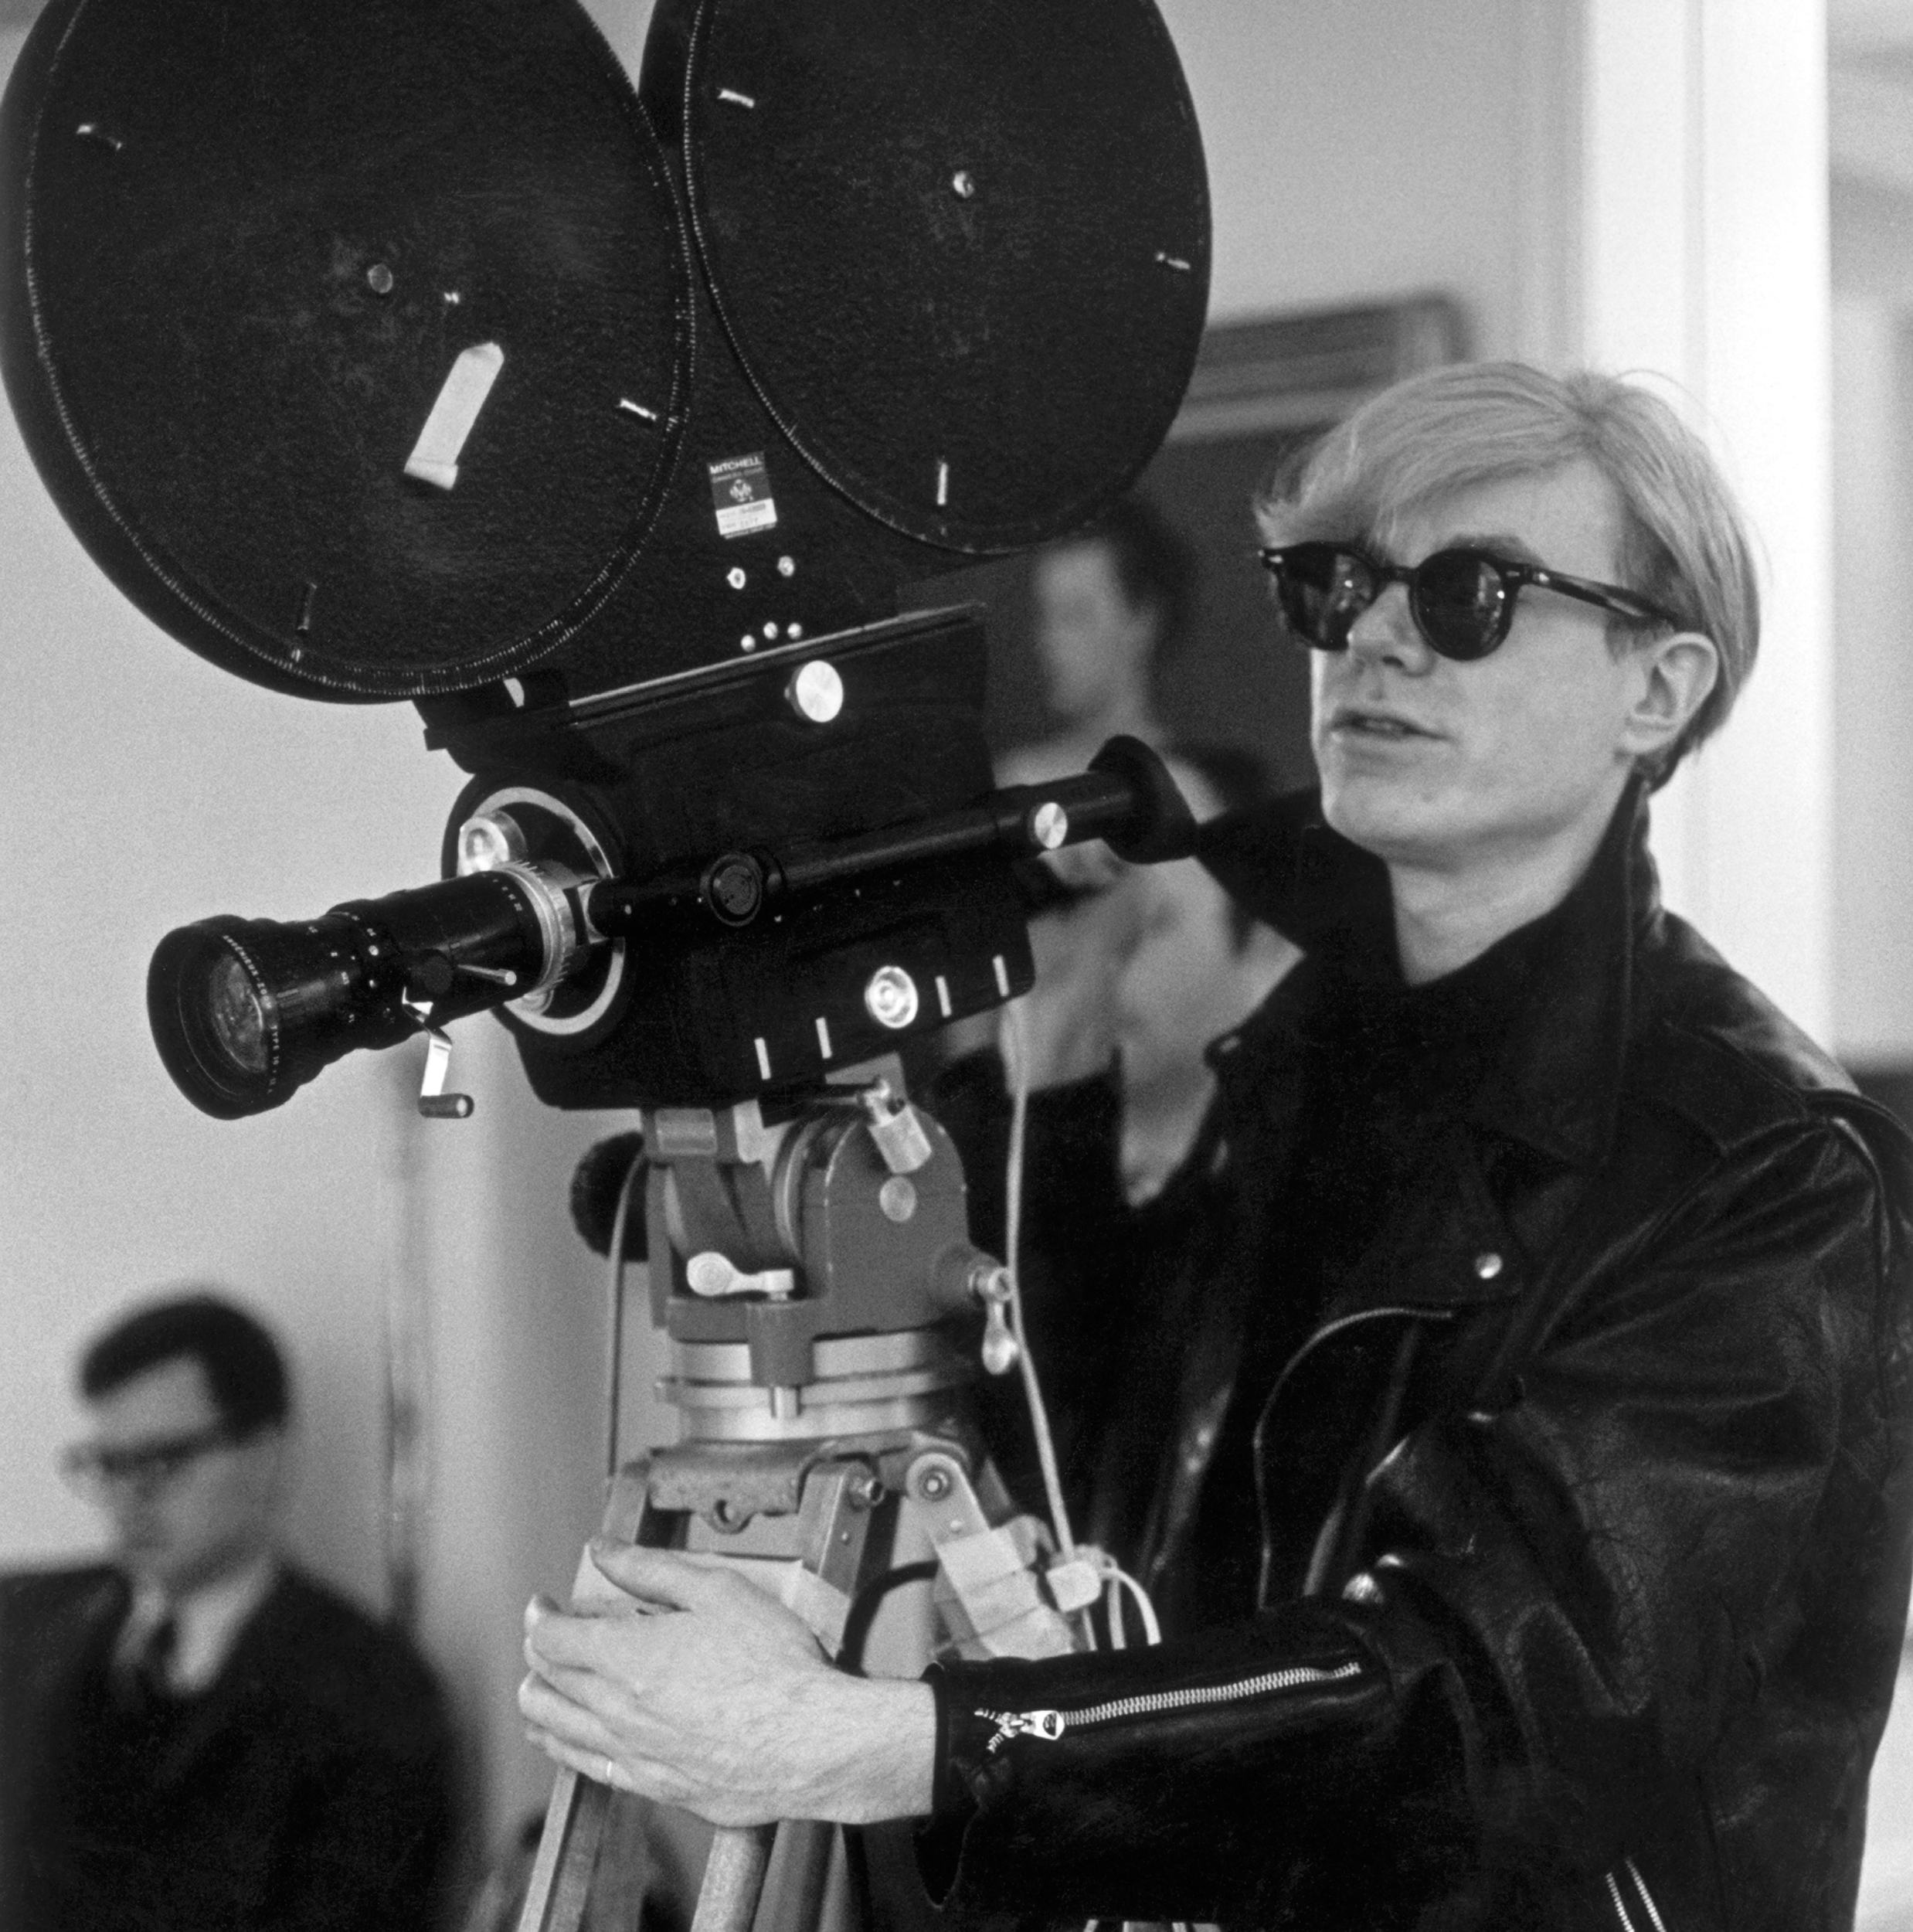 1968 Andy Warhol filming 'Snow White and the Seven Dwarfs'